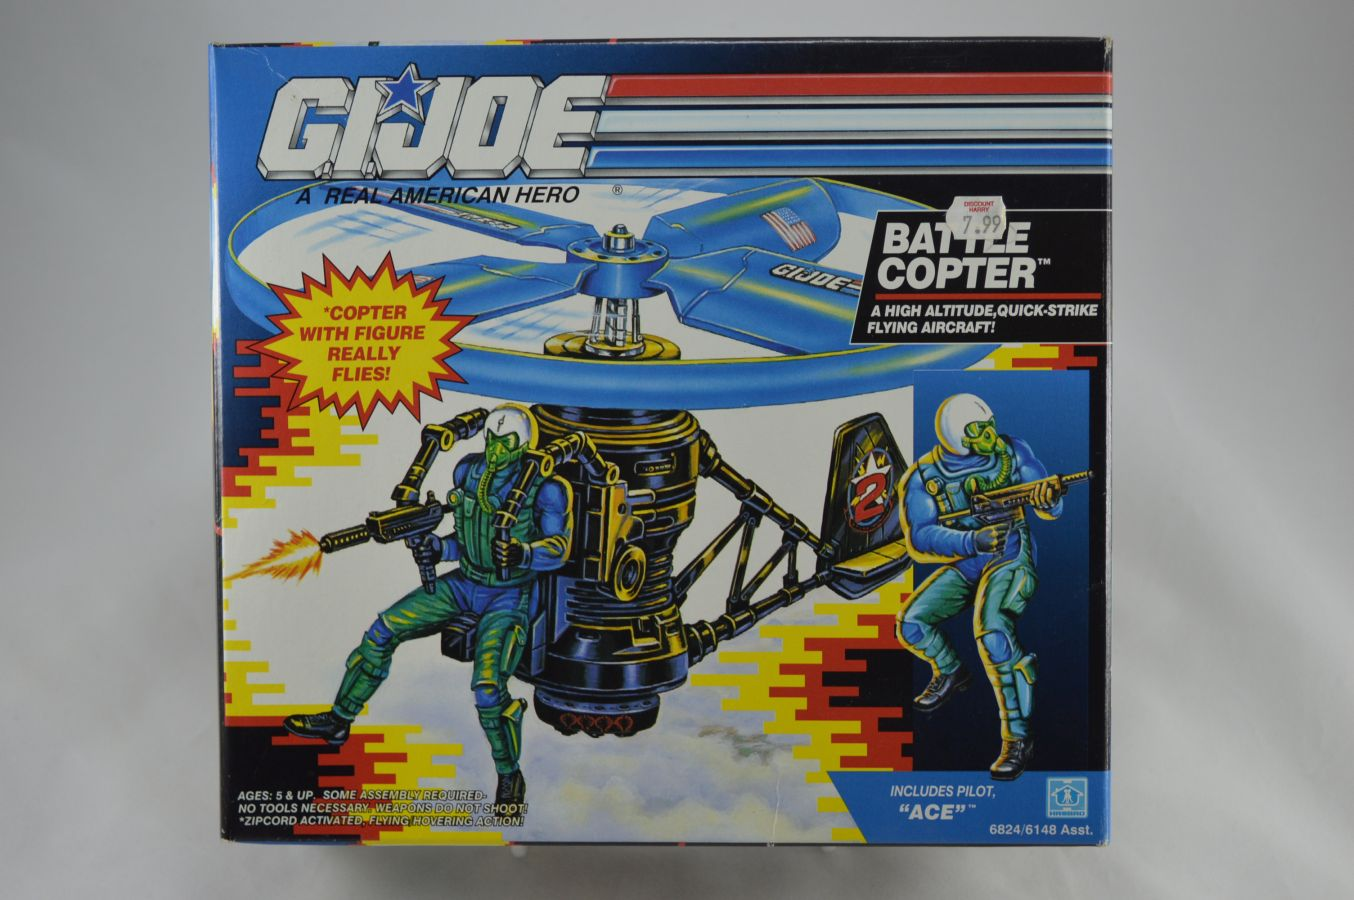 GI Joe Battle Copter with Ace Vehicle MIB Vintage